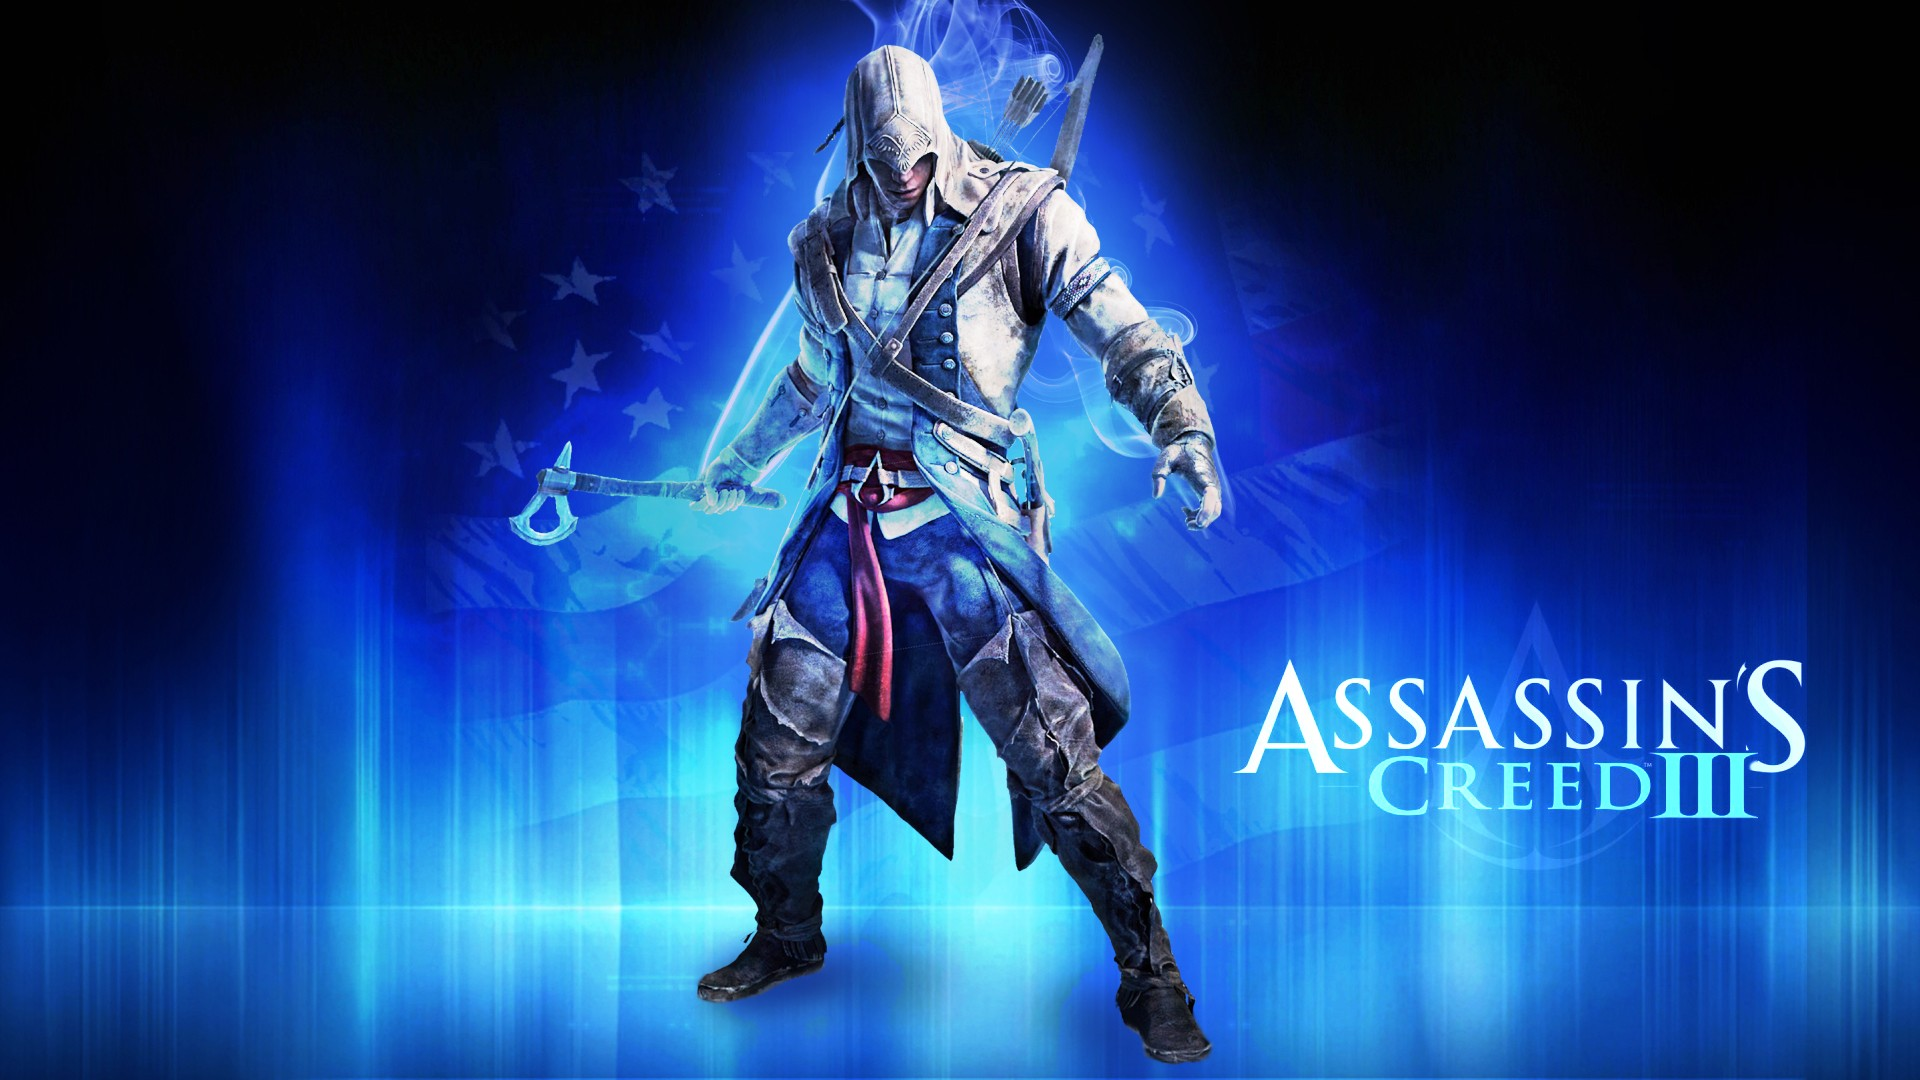 Assassins Creed 3 Wallpapers 6 HD Desktop Wallpapers 1920x1080